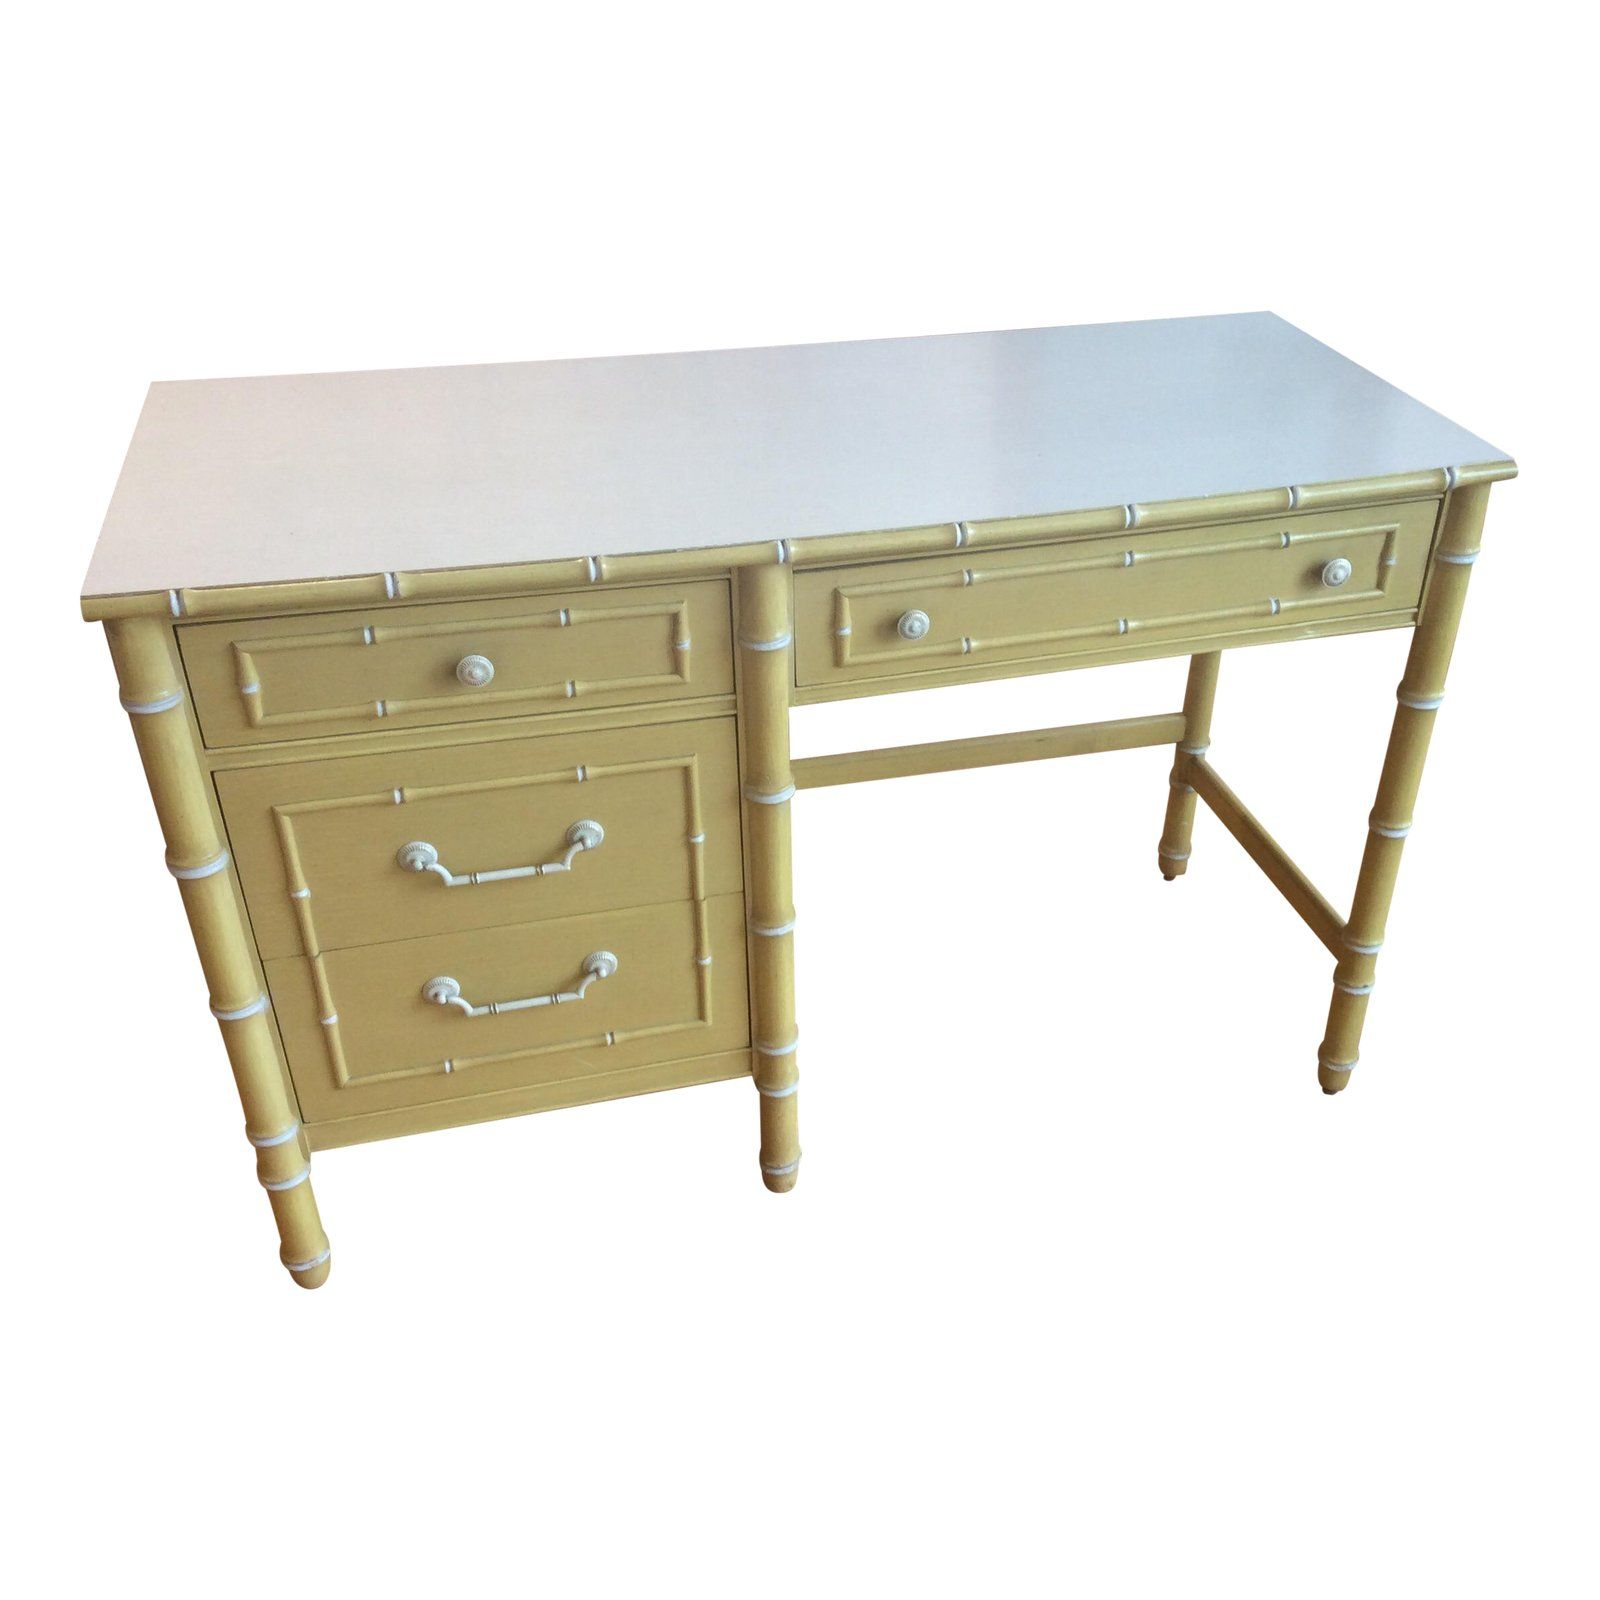 Thomasville Vintage Faux Bamboo Desk For The Home Faux Bamboo Bamboo Furniture Entry Furniture